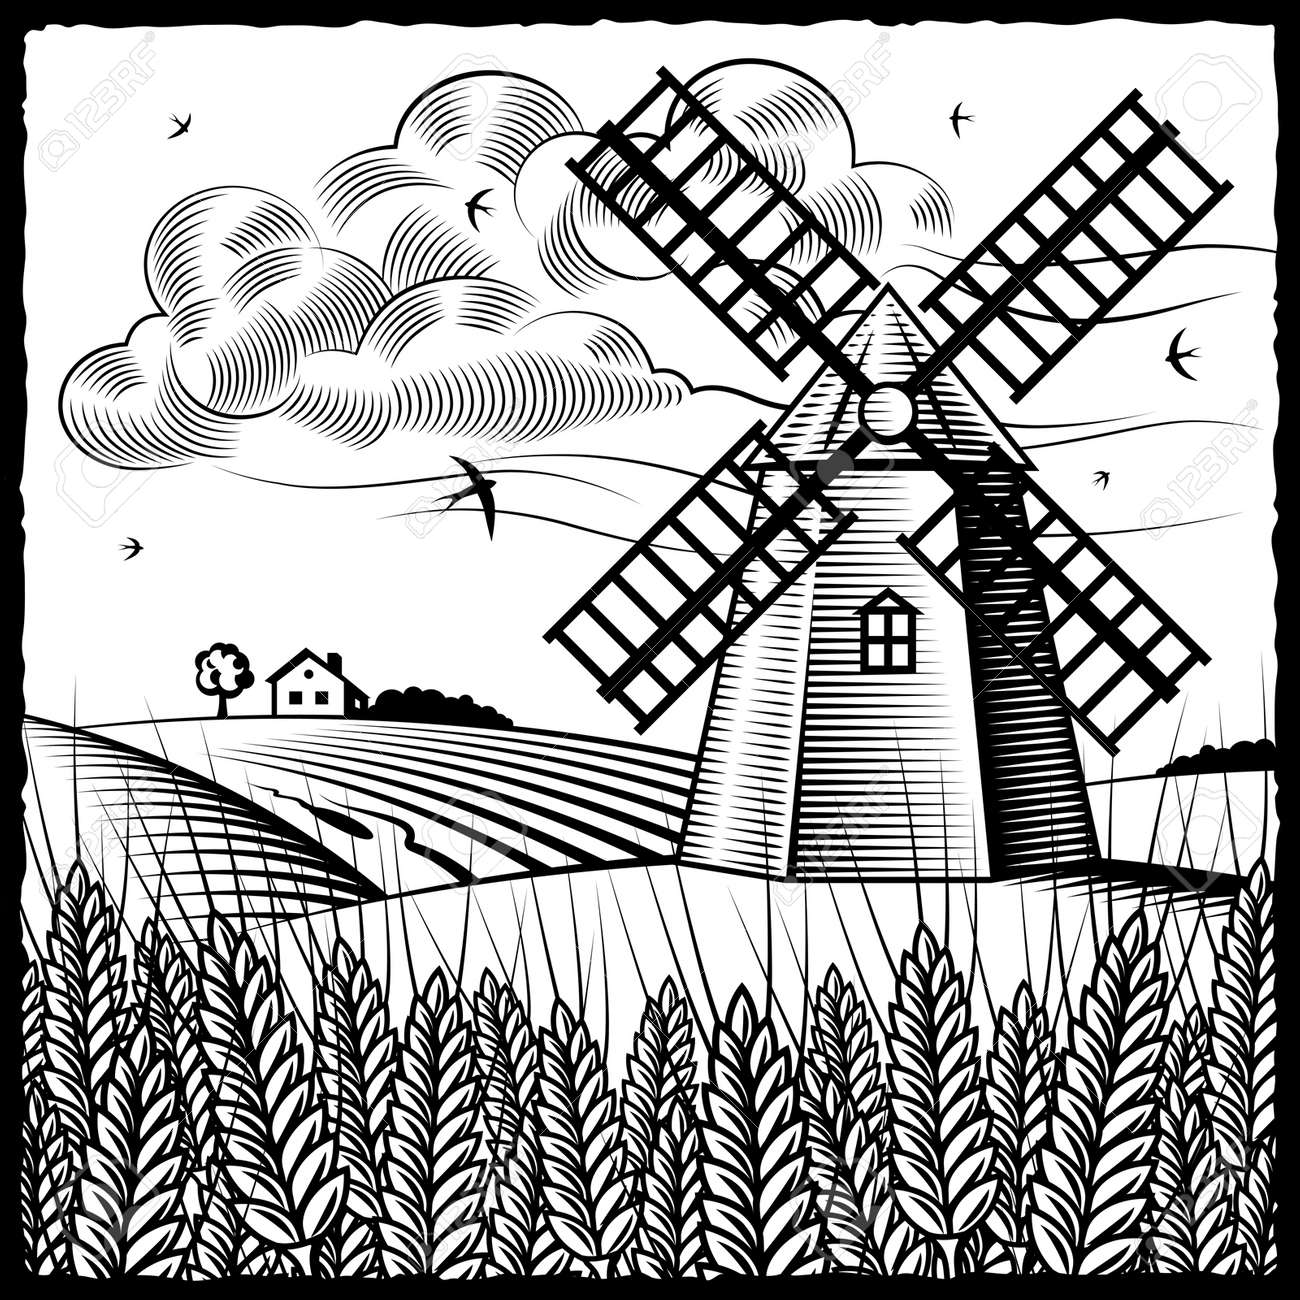 Agriculture Clipart Black And White windmill black and white